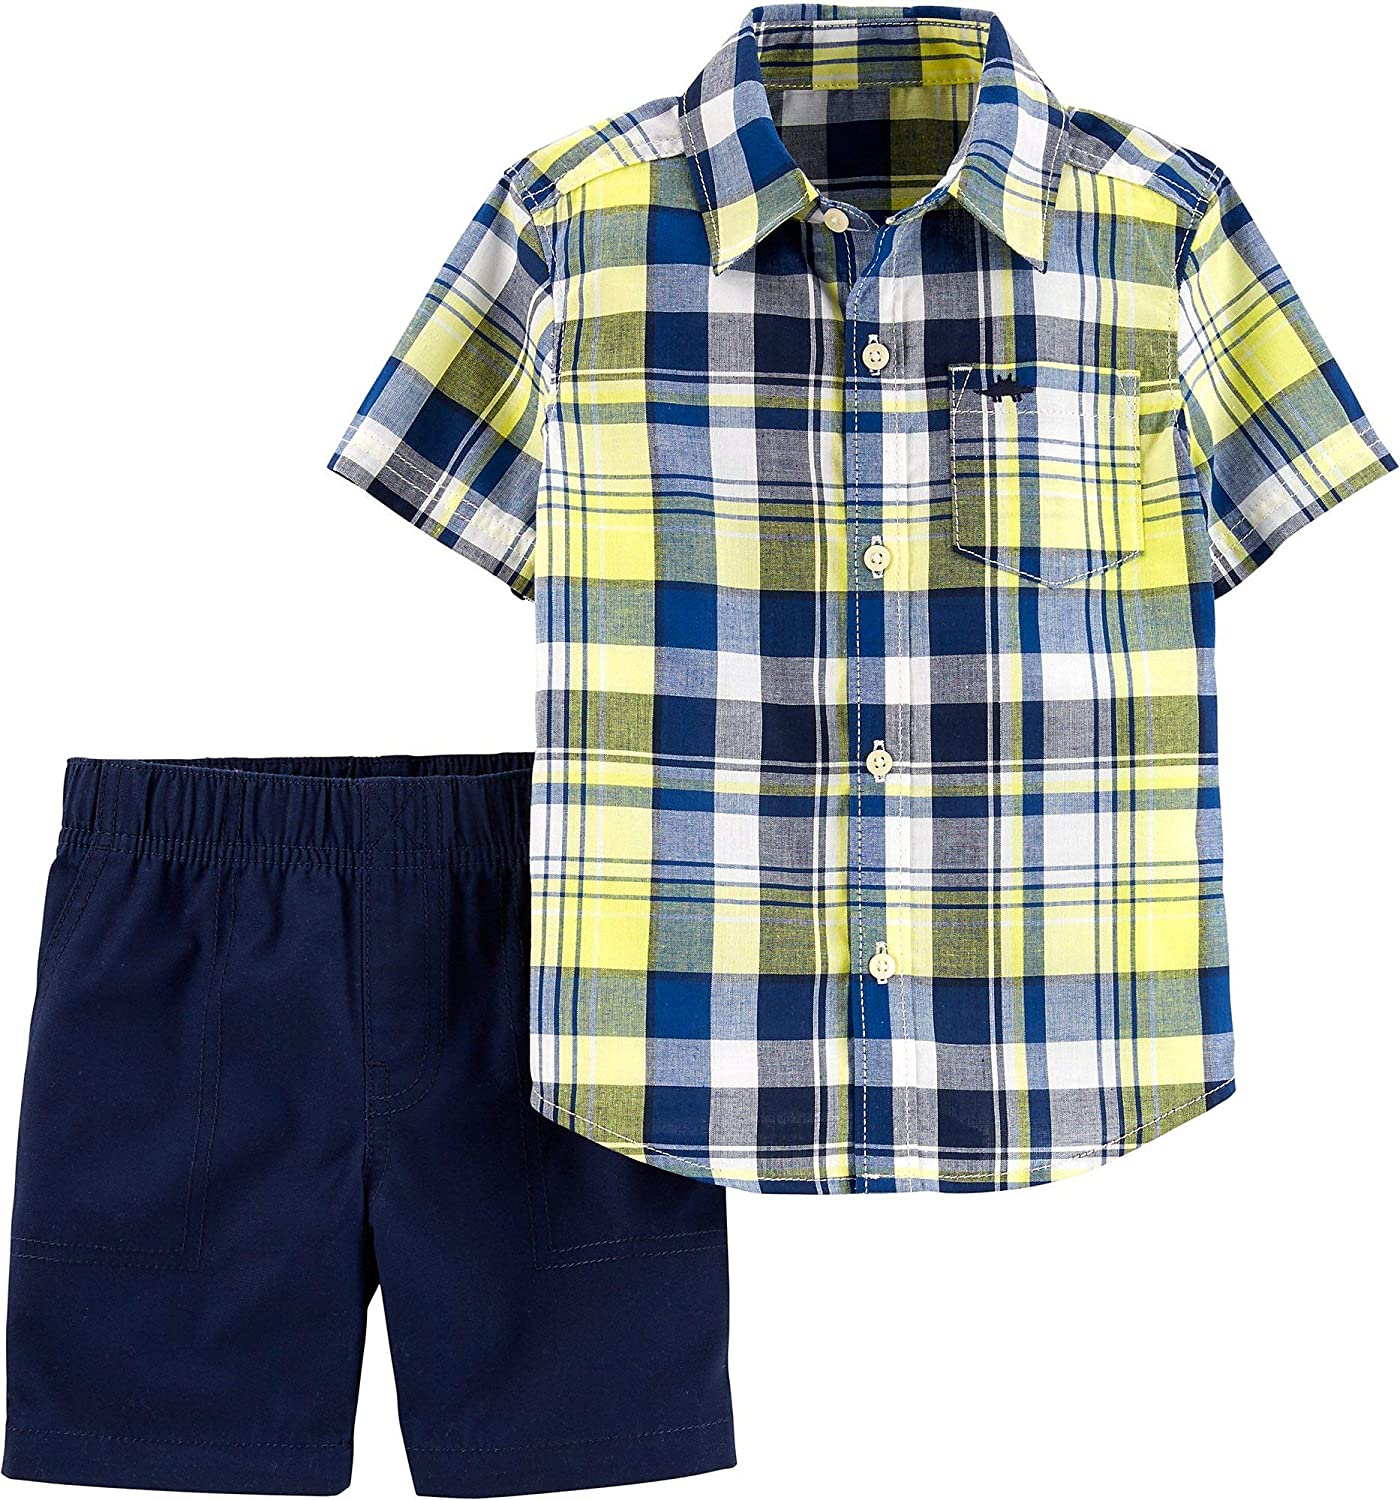 Carters Baby Boys Blue Plaid Flat Front Button Shorts